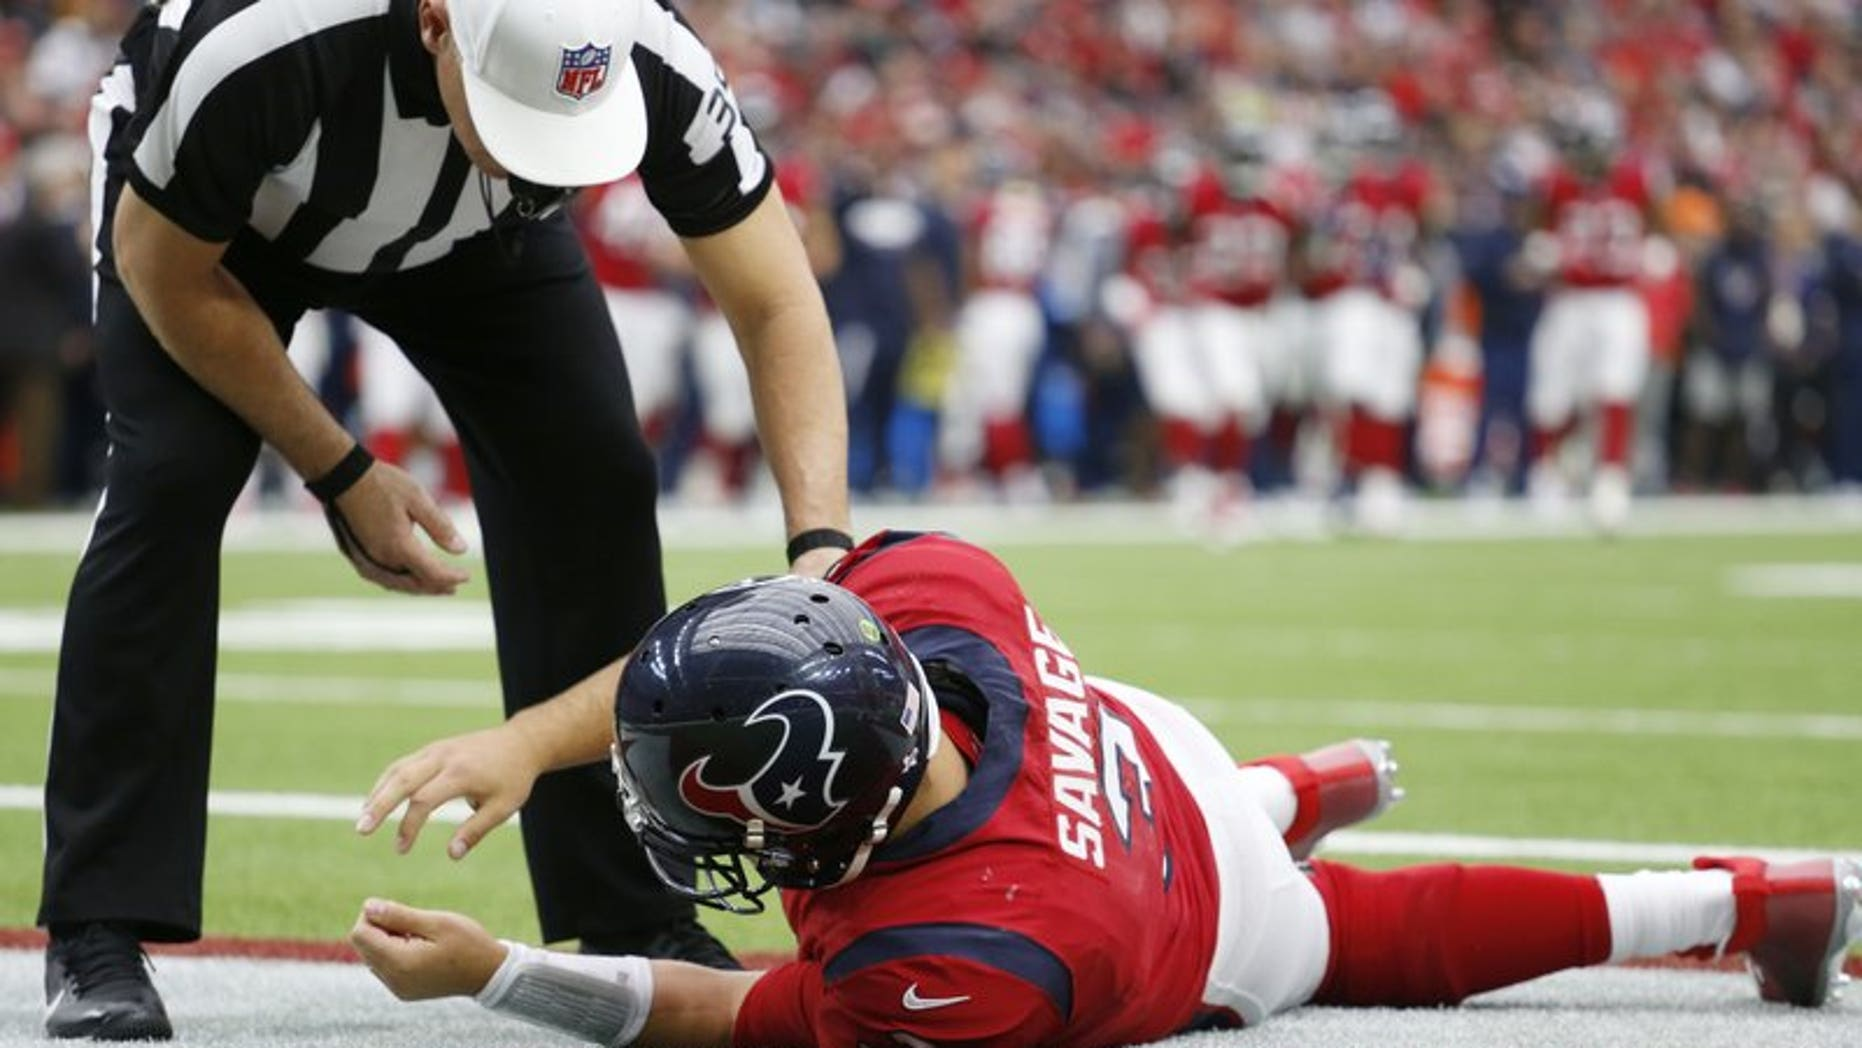 December 10, 2017: Houston Texas quarterback Tom Savage on the ground frollowing a hit during the second quarter of an NFL football game against the San Francisco 49ers.